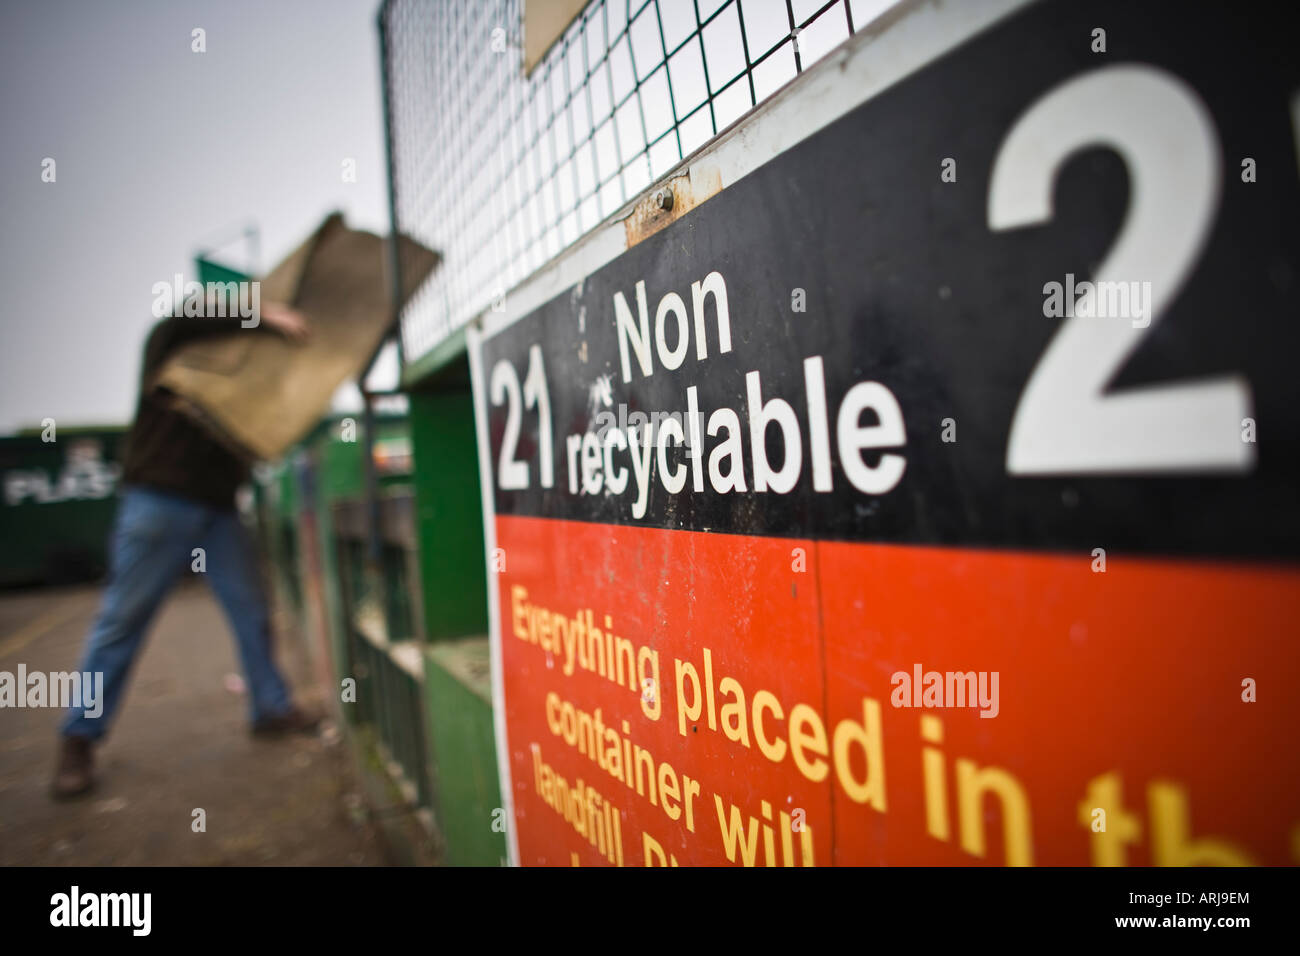 Non recyclable container at a recycling centre, UK - Stock Image